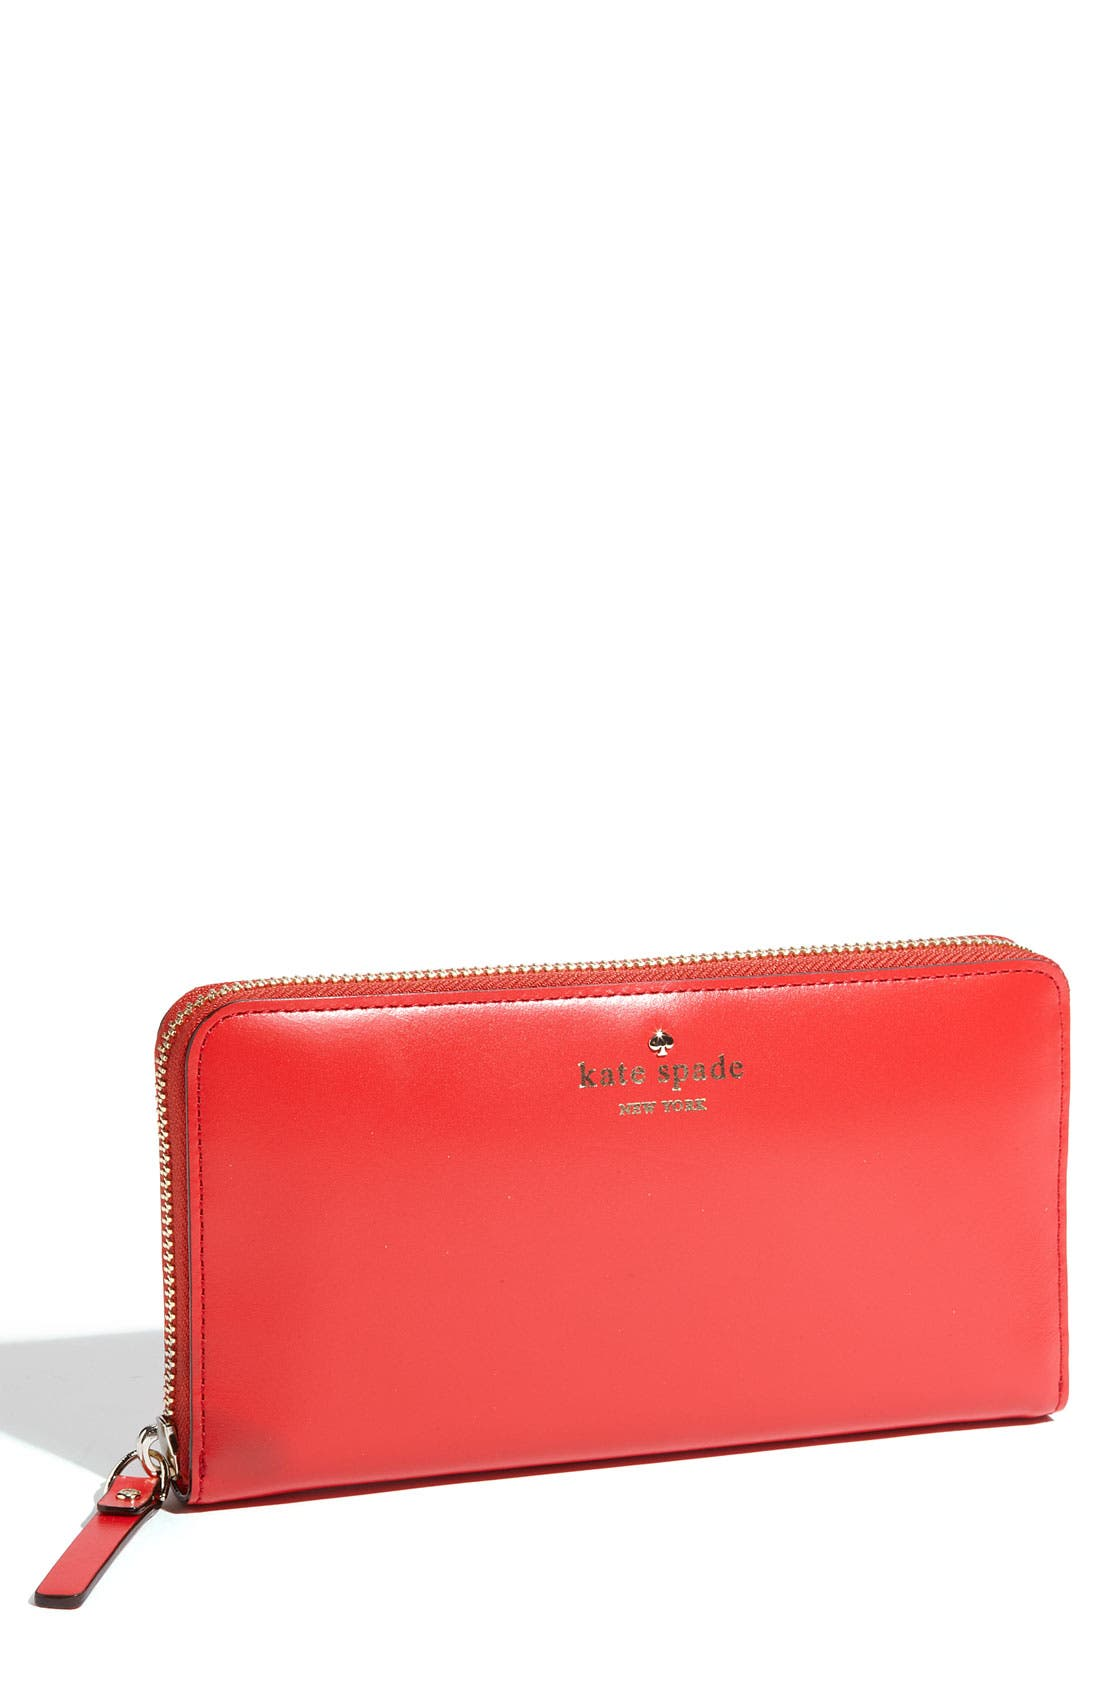 Alternate Image 1 Selected - kate spade new york 'tudor city - lacey' zip around wallet